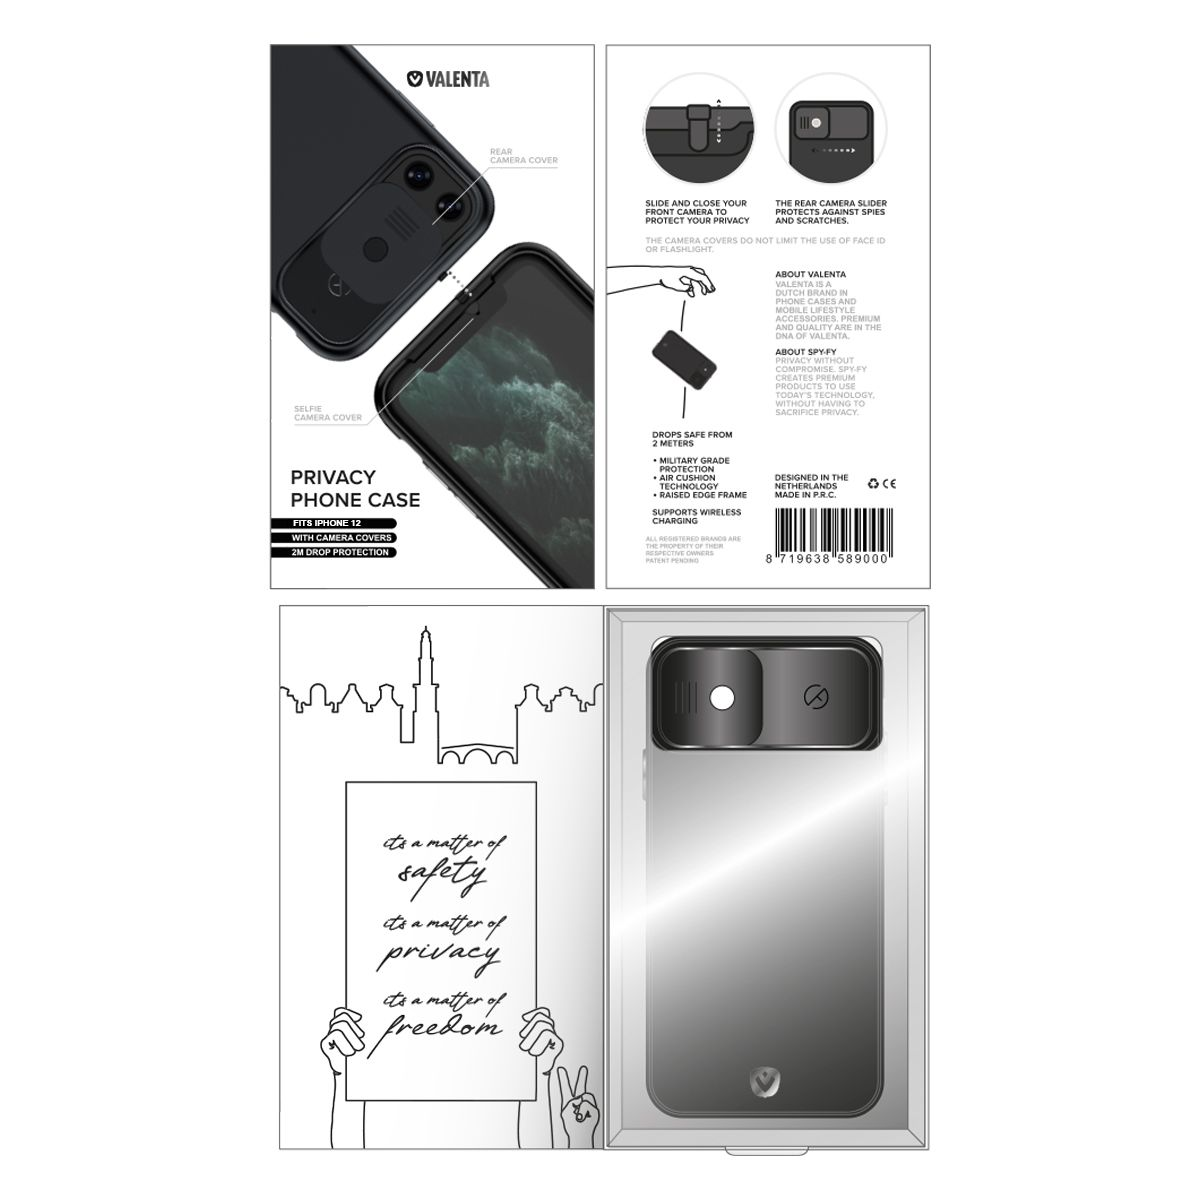 valenta x spyfy privacy cover black iphone 12 mini with camera covers front rear